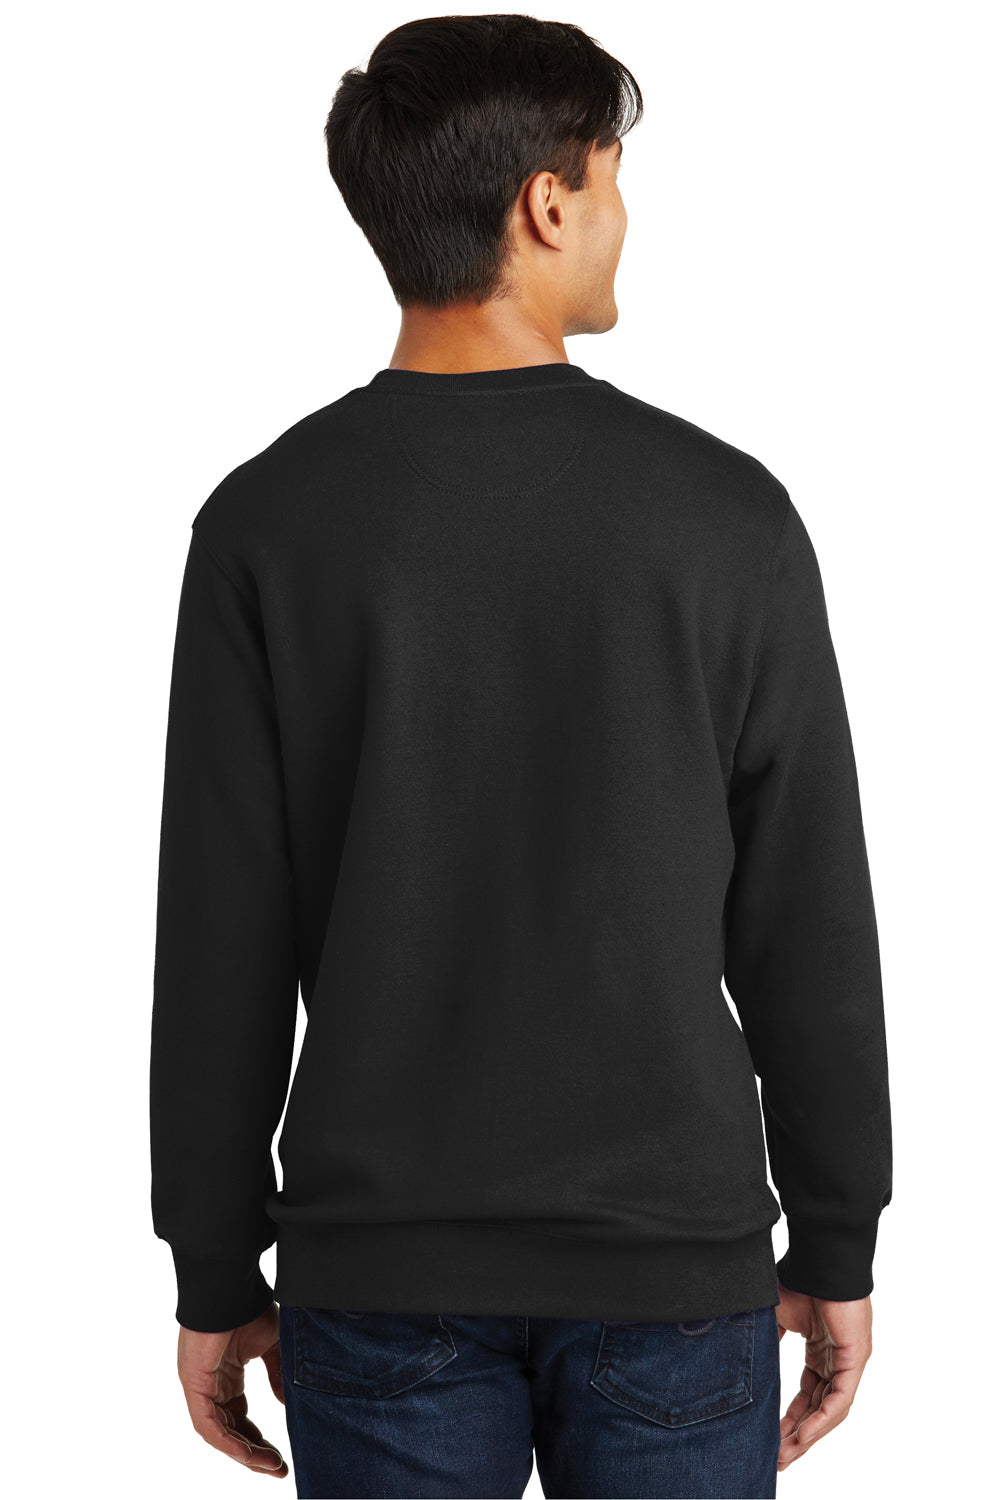 Port & Company PC850 Mens Fan Favorite Fleece Crewneck Sweatshirt Black Back